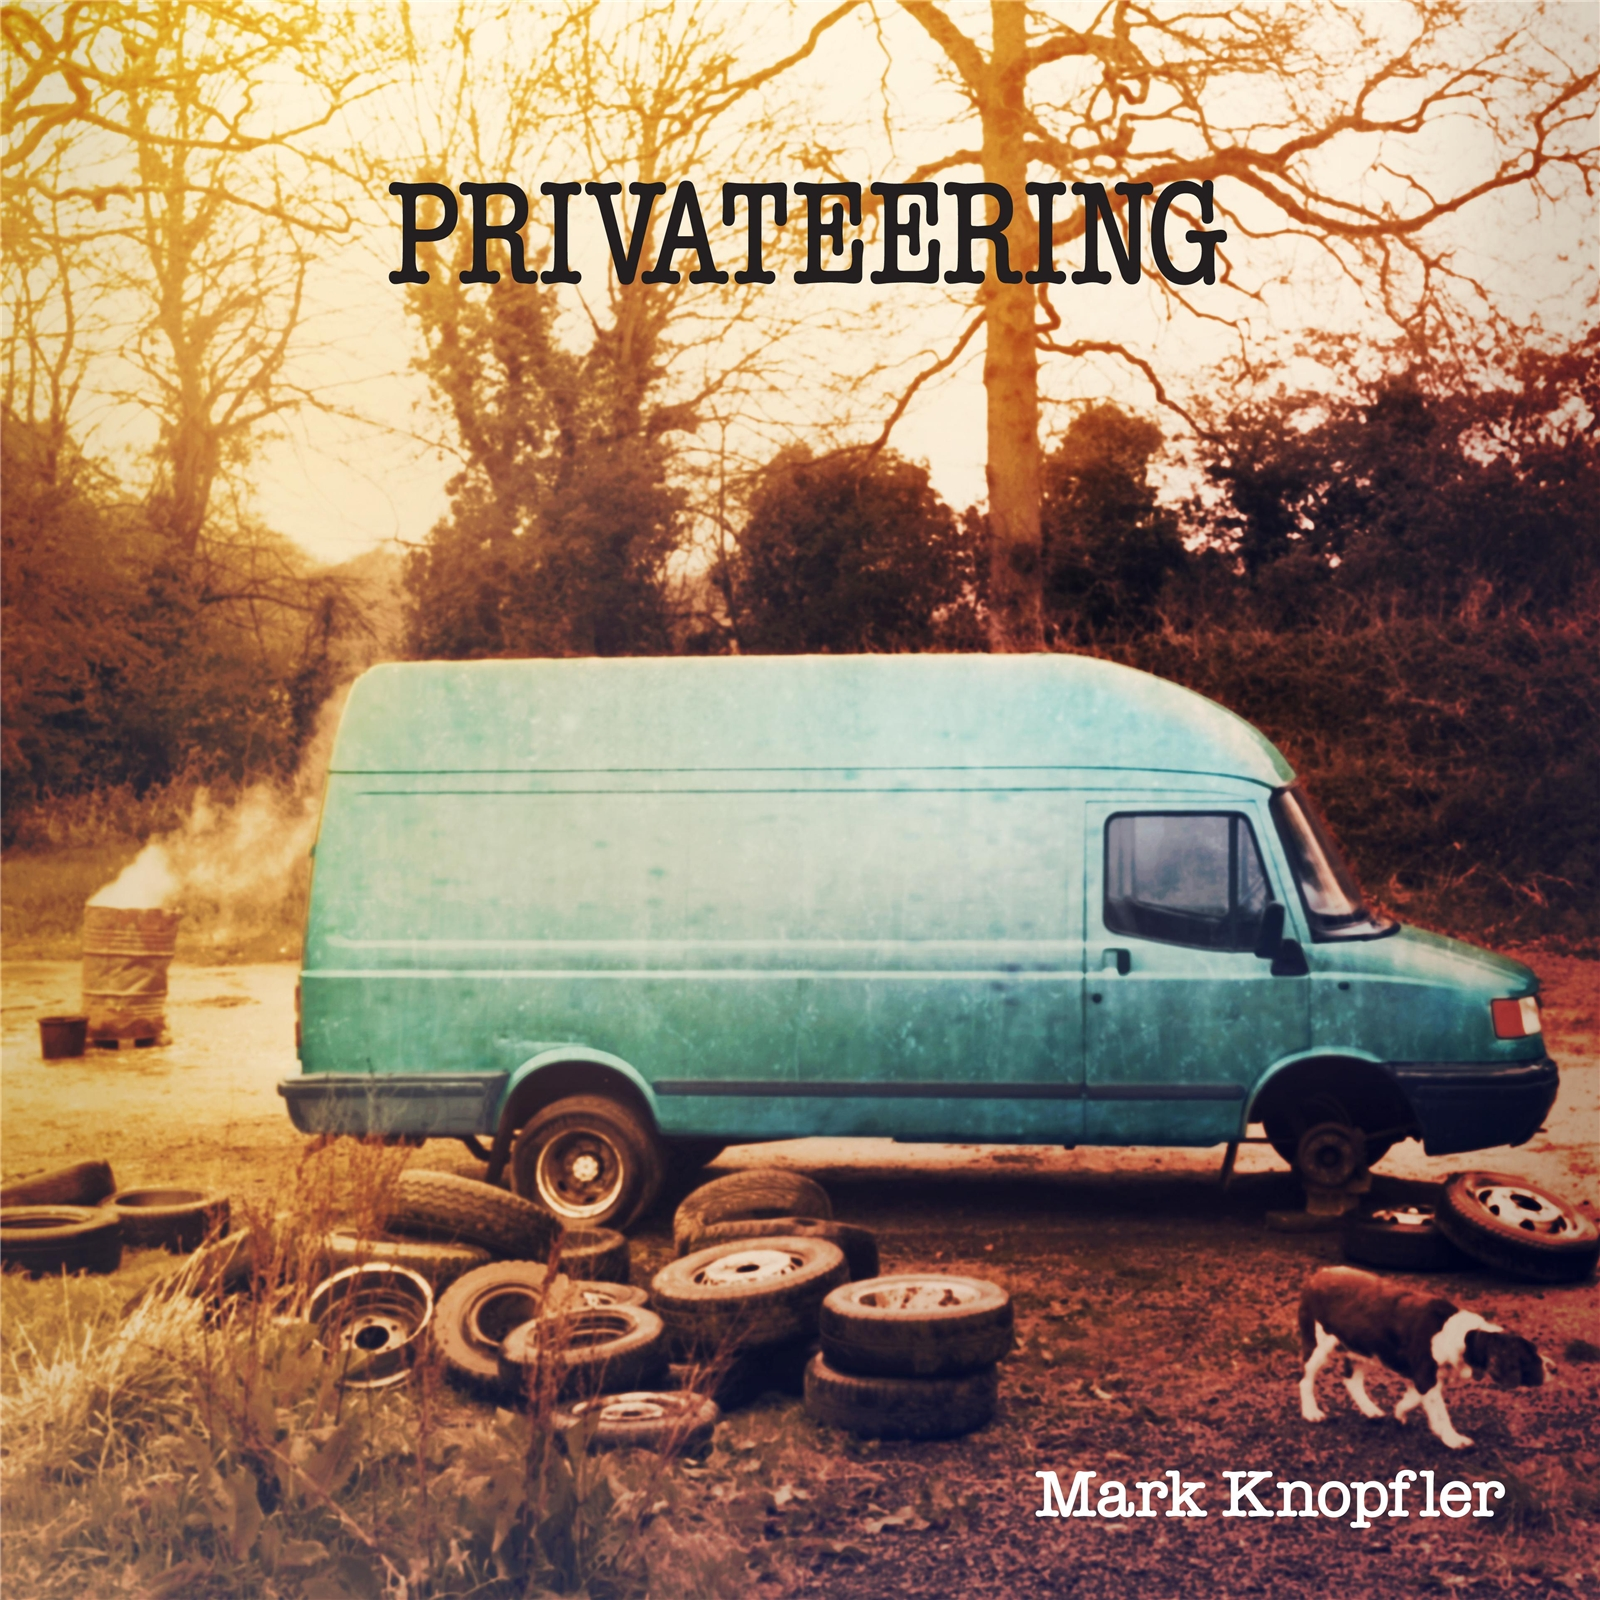 All the Roadrunning (with Mark Knopfler)